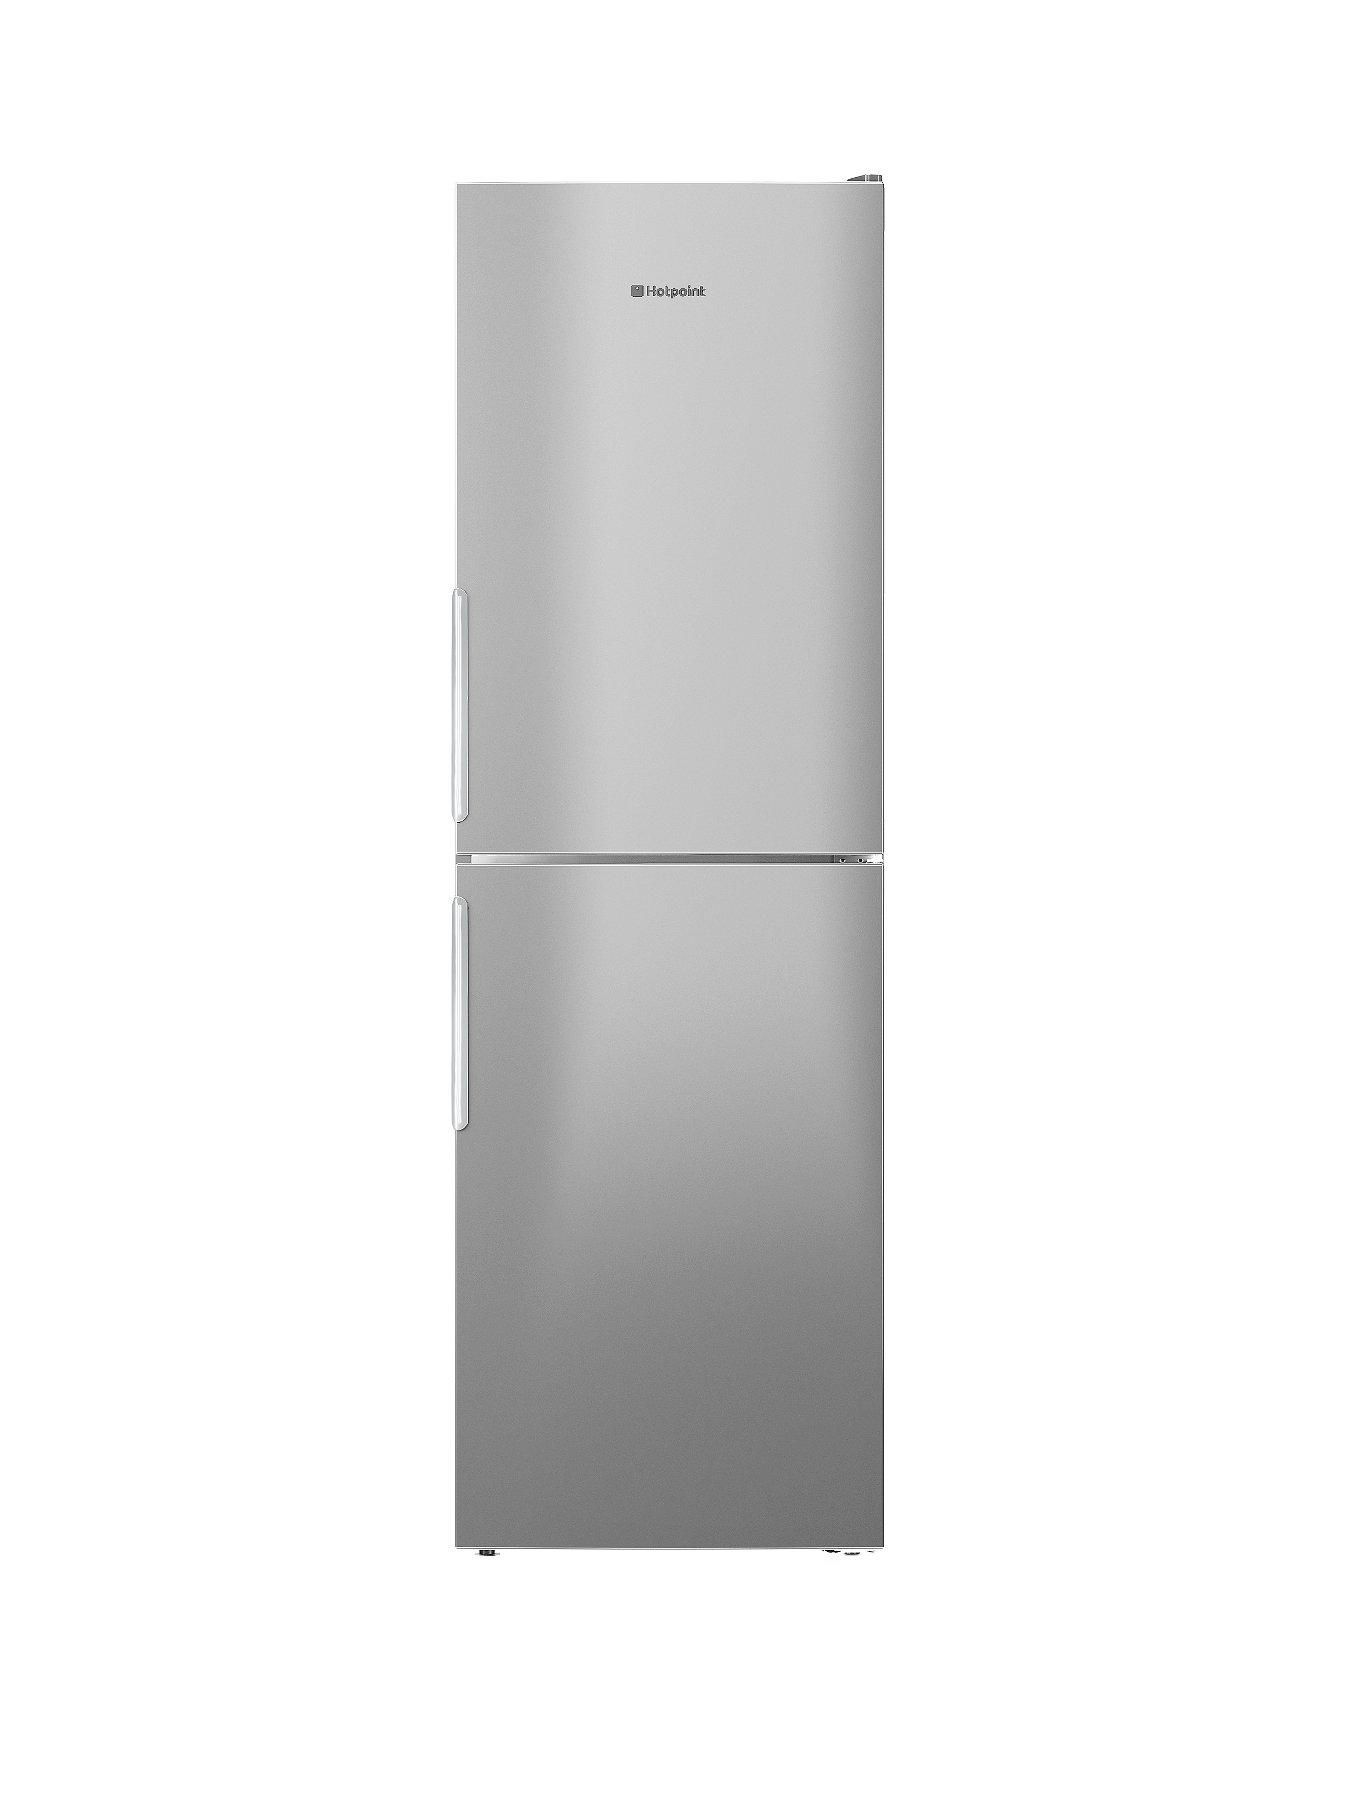 Hotpoint Day 1 XEX95T1IGZ 60cm Frost Free Fridge Freezer Graphite